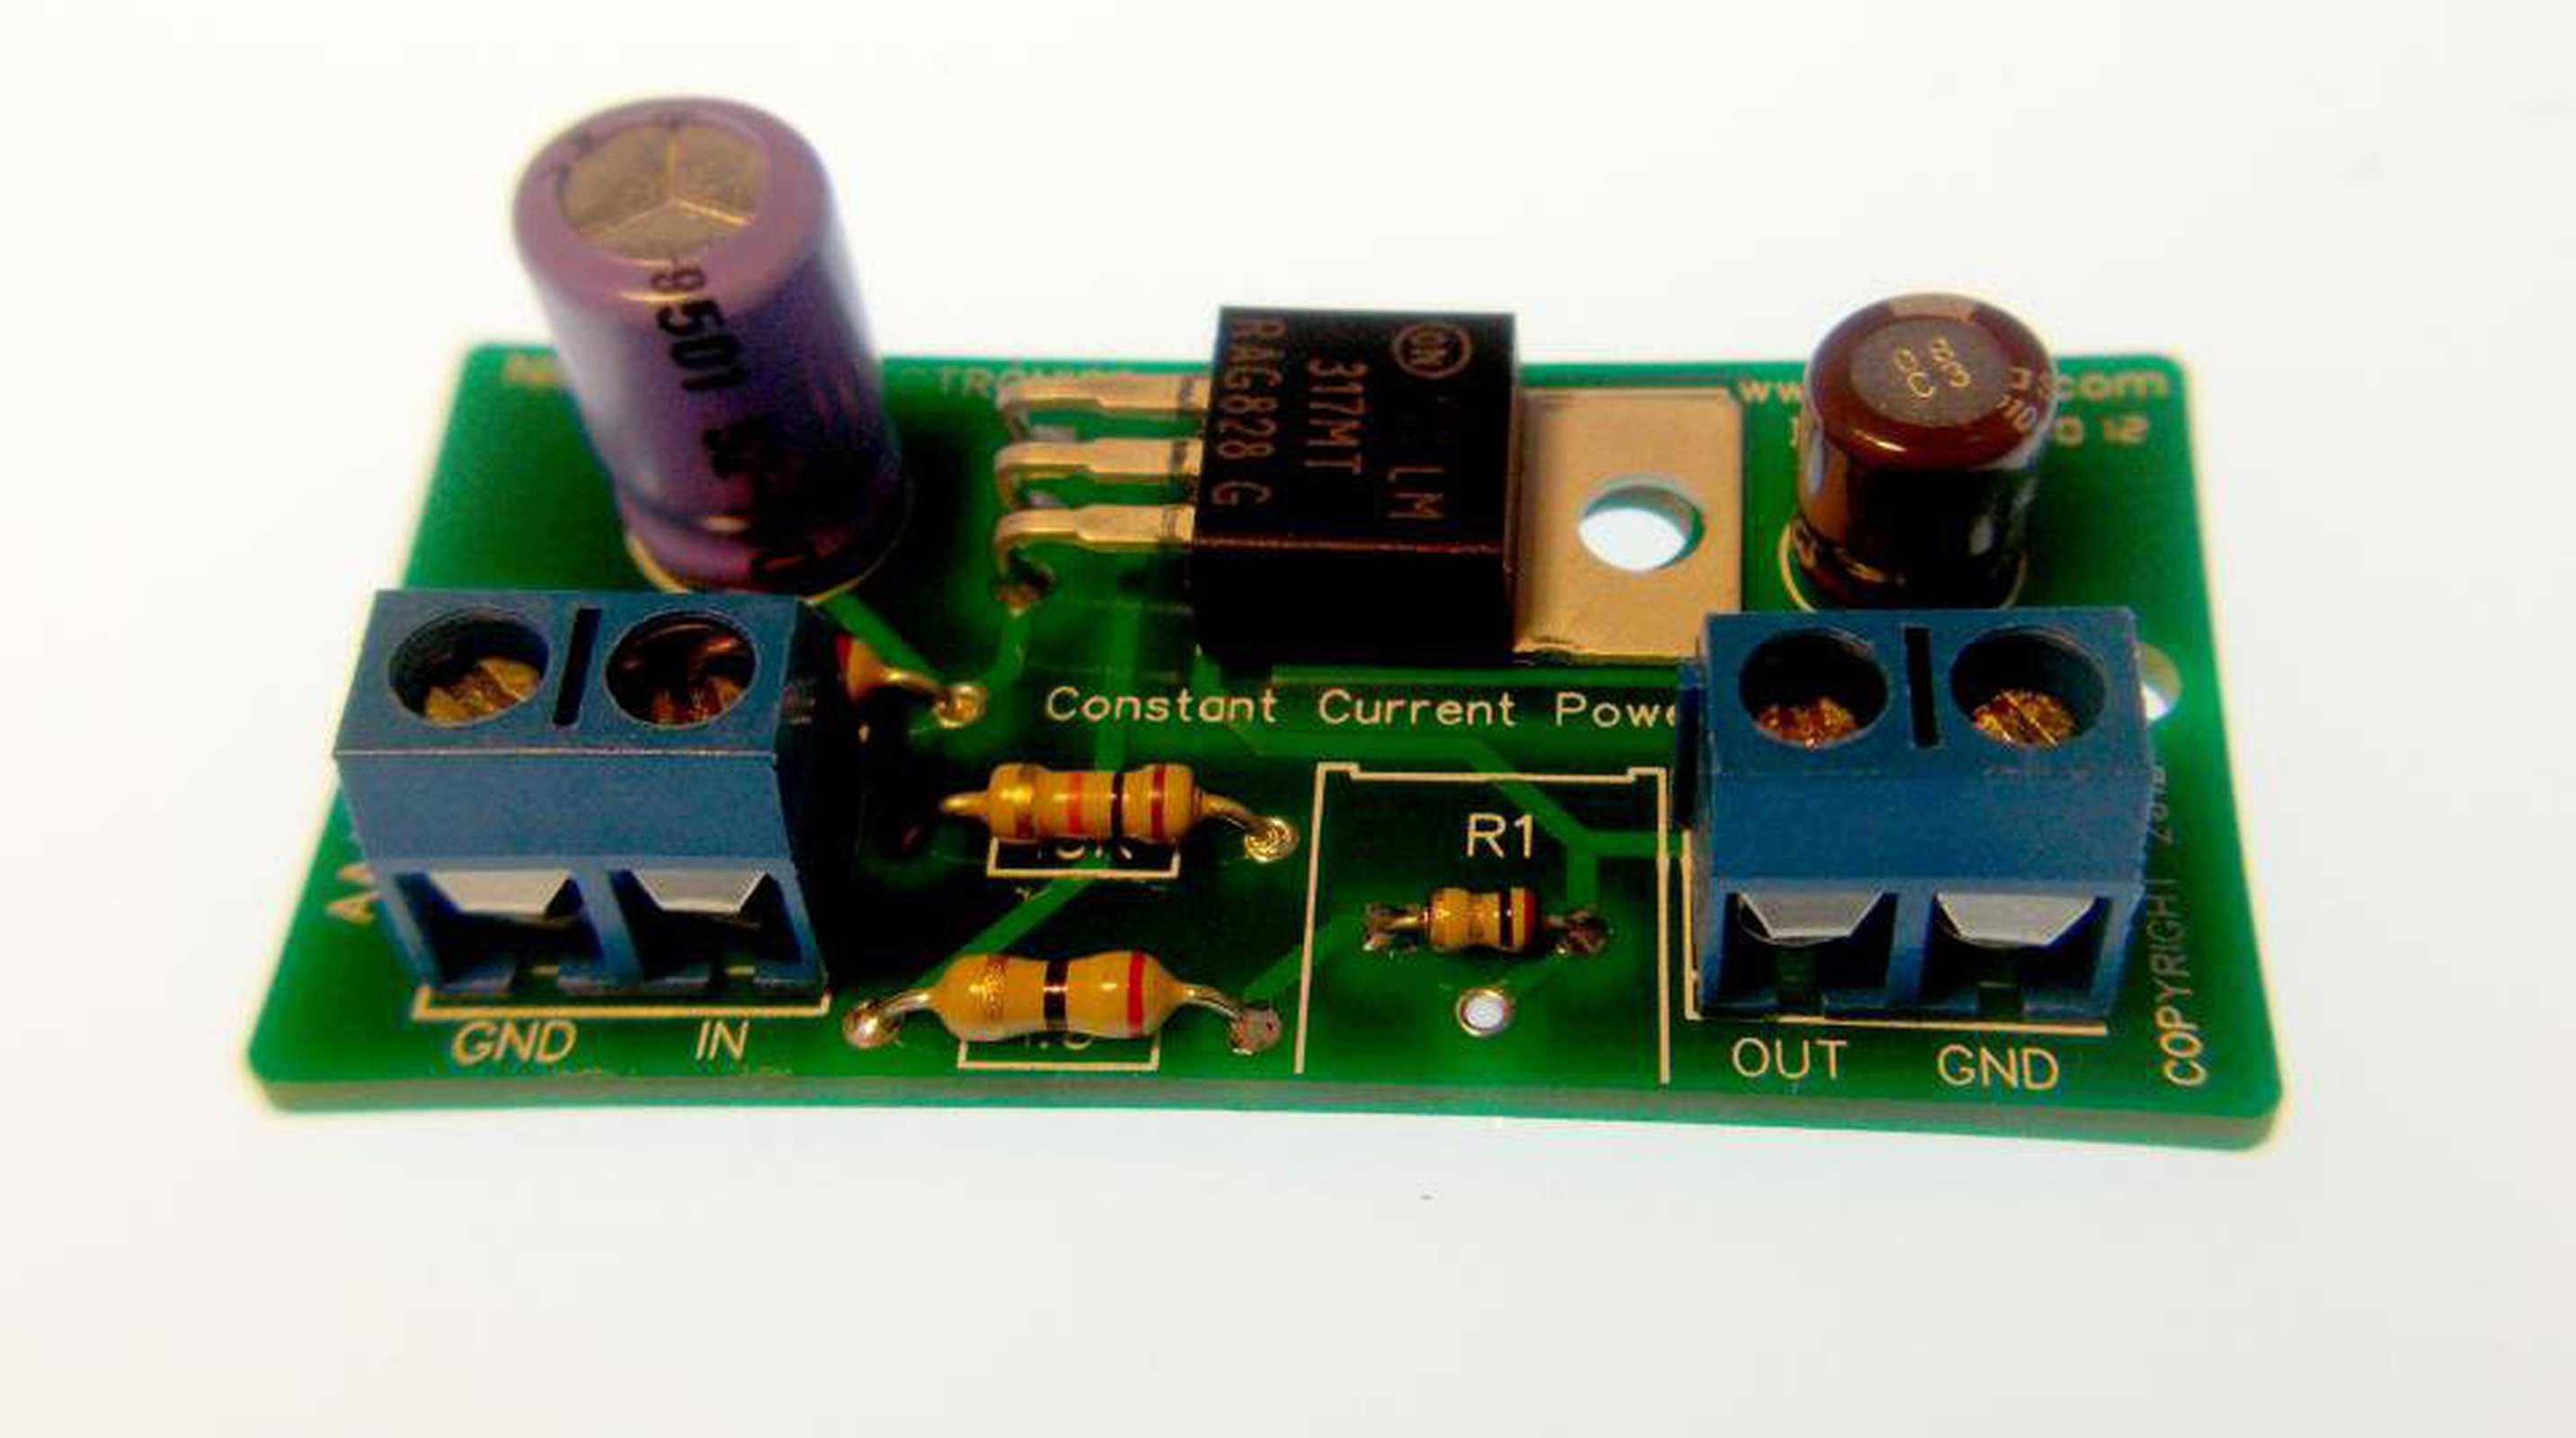 Constant Current Battery Charger Kit From Nightfire Electronics Llc Nicd Uses Leds 1